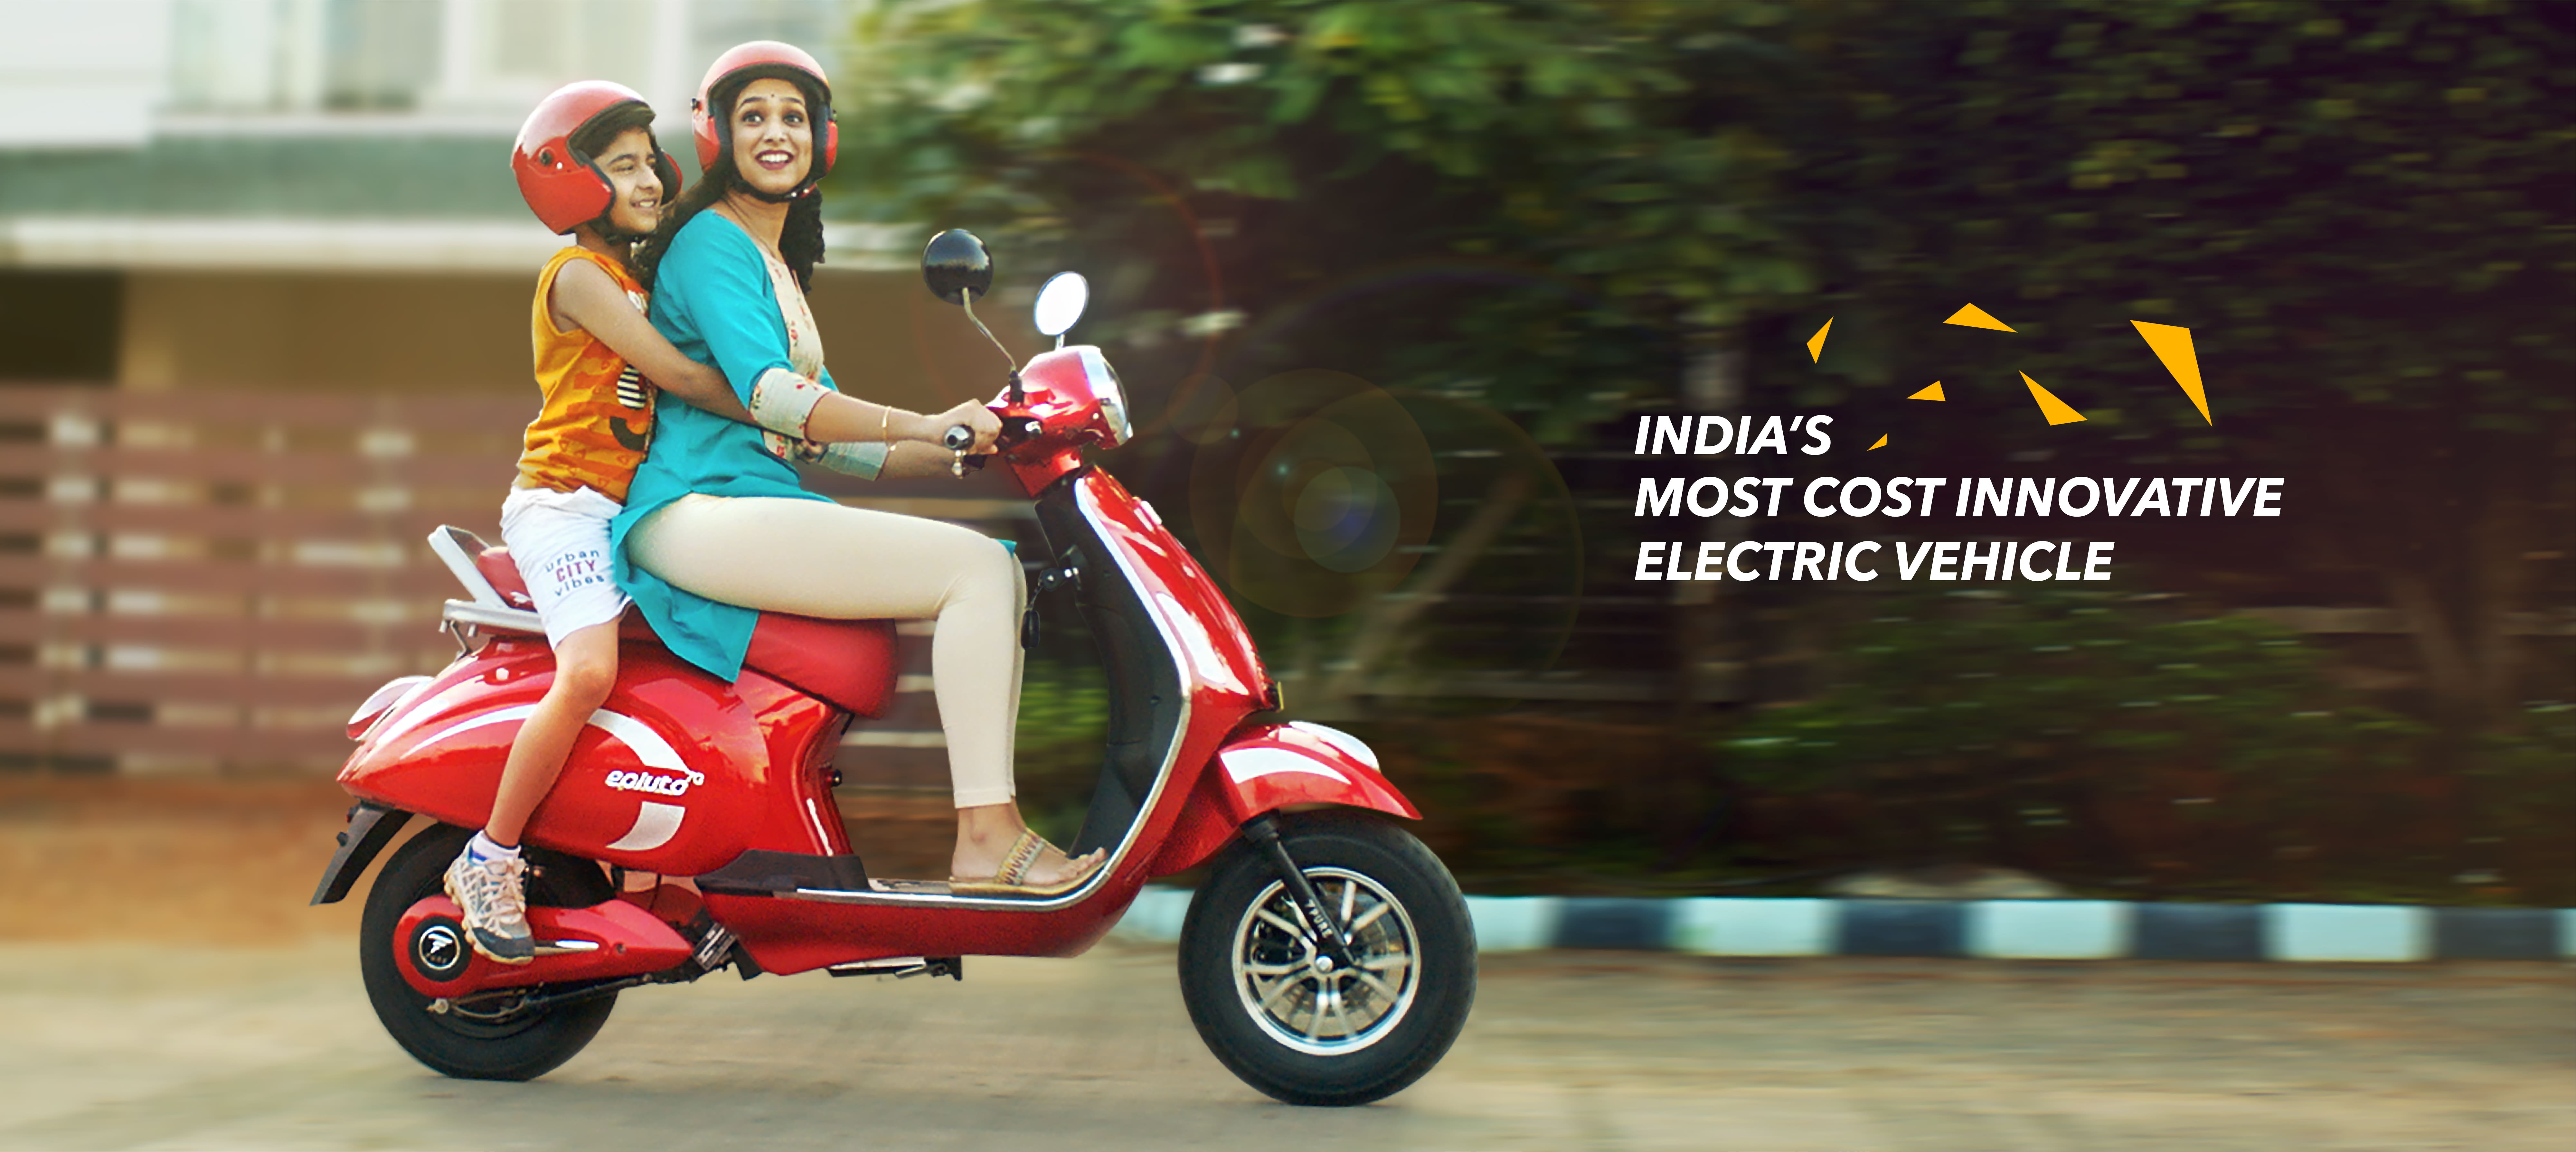 India's most cost innovative electric scooter